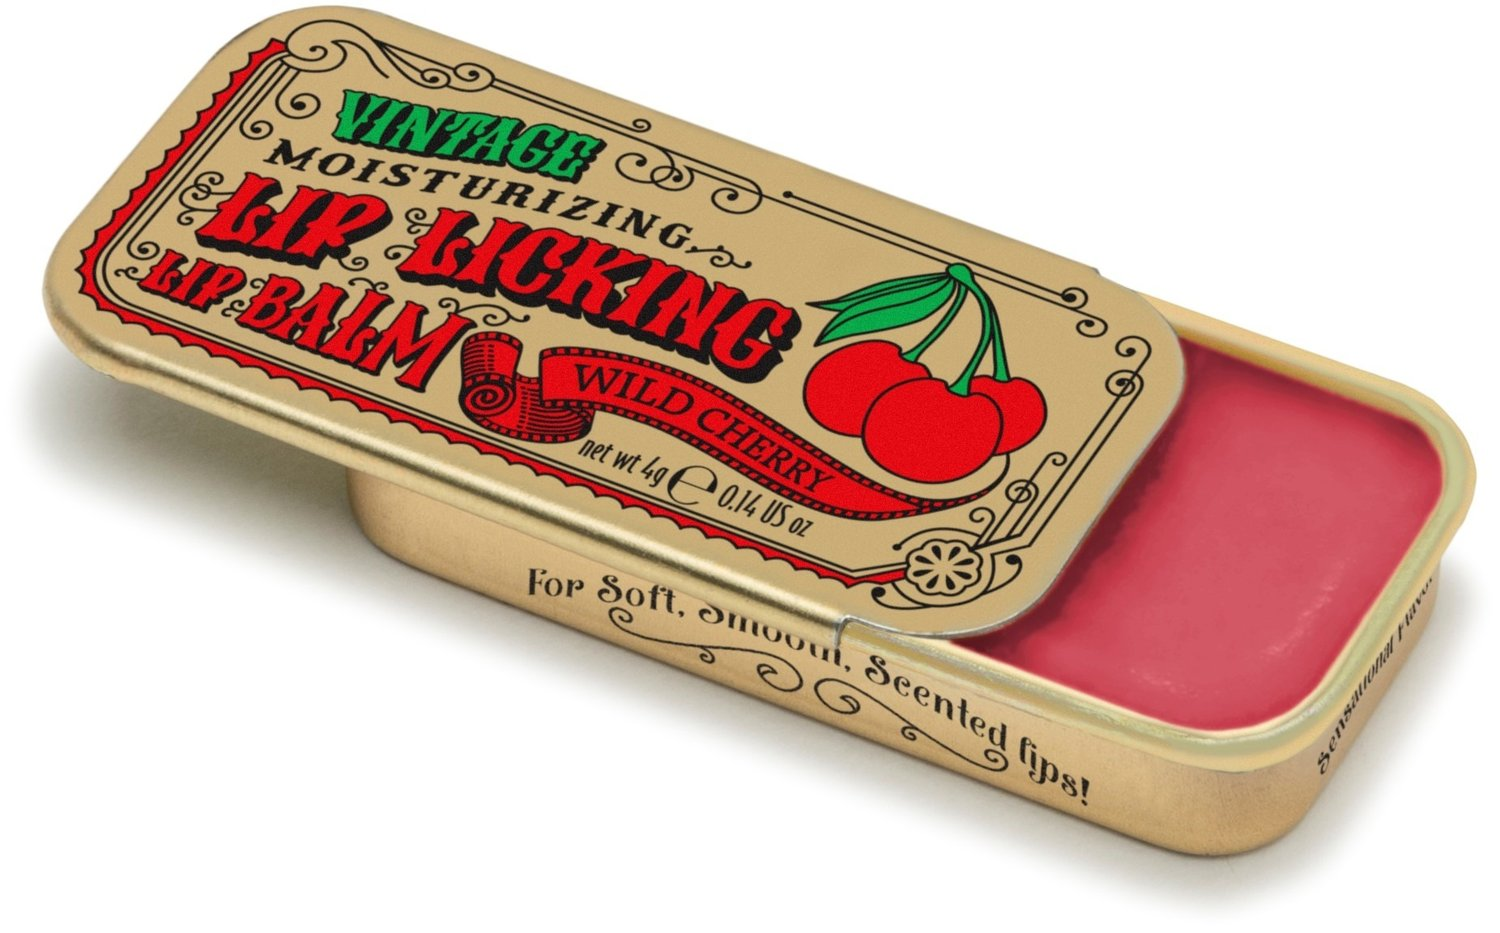 Wild Cherry(Tinte Cosmetics Vintage Moisturizing Lip Licking Lip Balm)